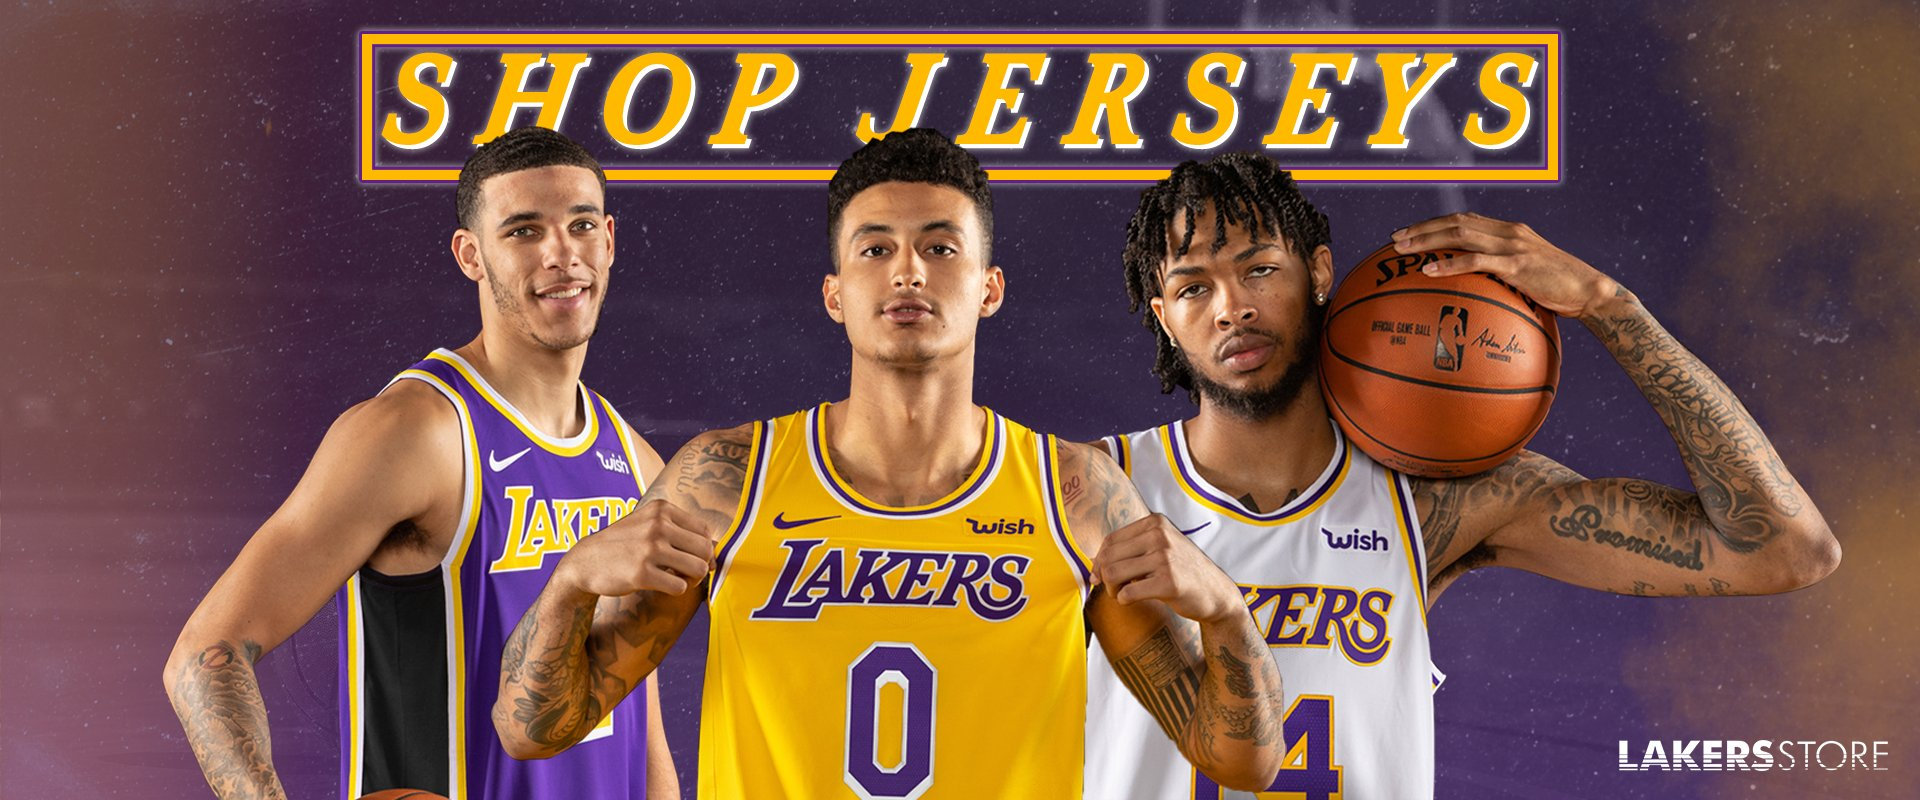 Lakers Store 35d9ef28b